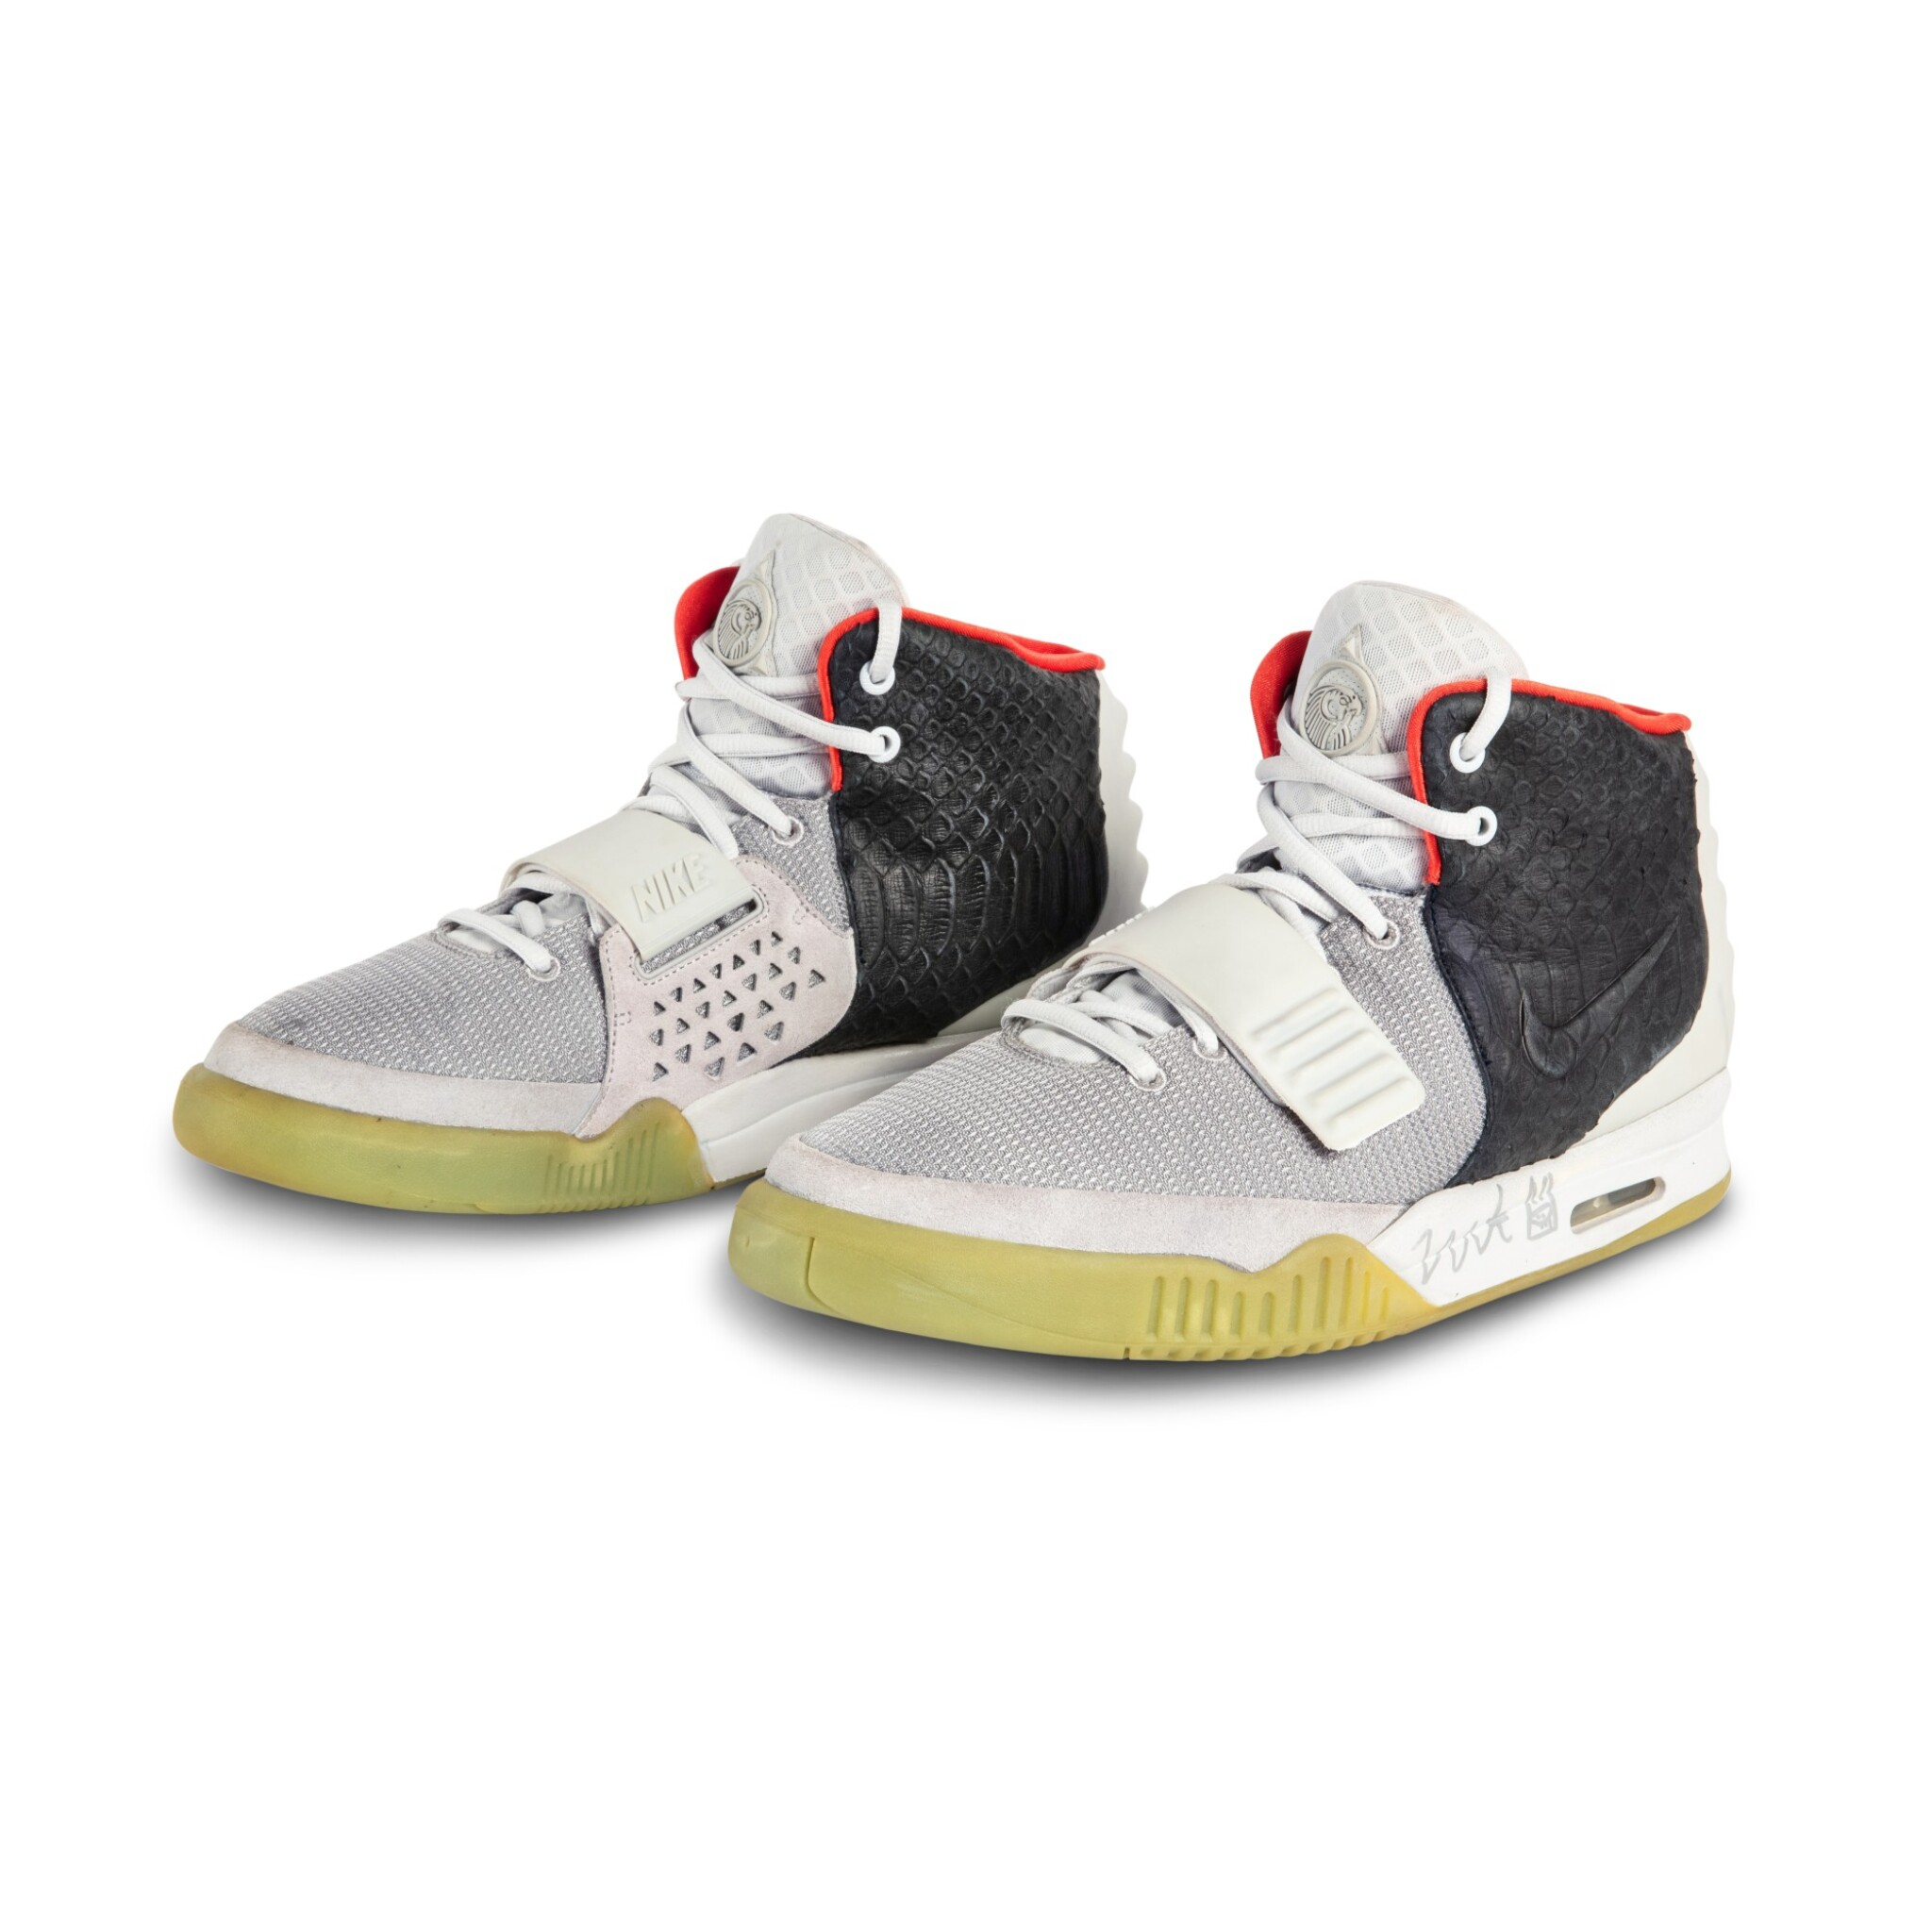 View full screen - View 1 of Lot 38. Nike Air Yeezy 2 'Mismatch' Sample Signed by Kanye West | Size 12.